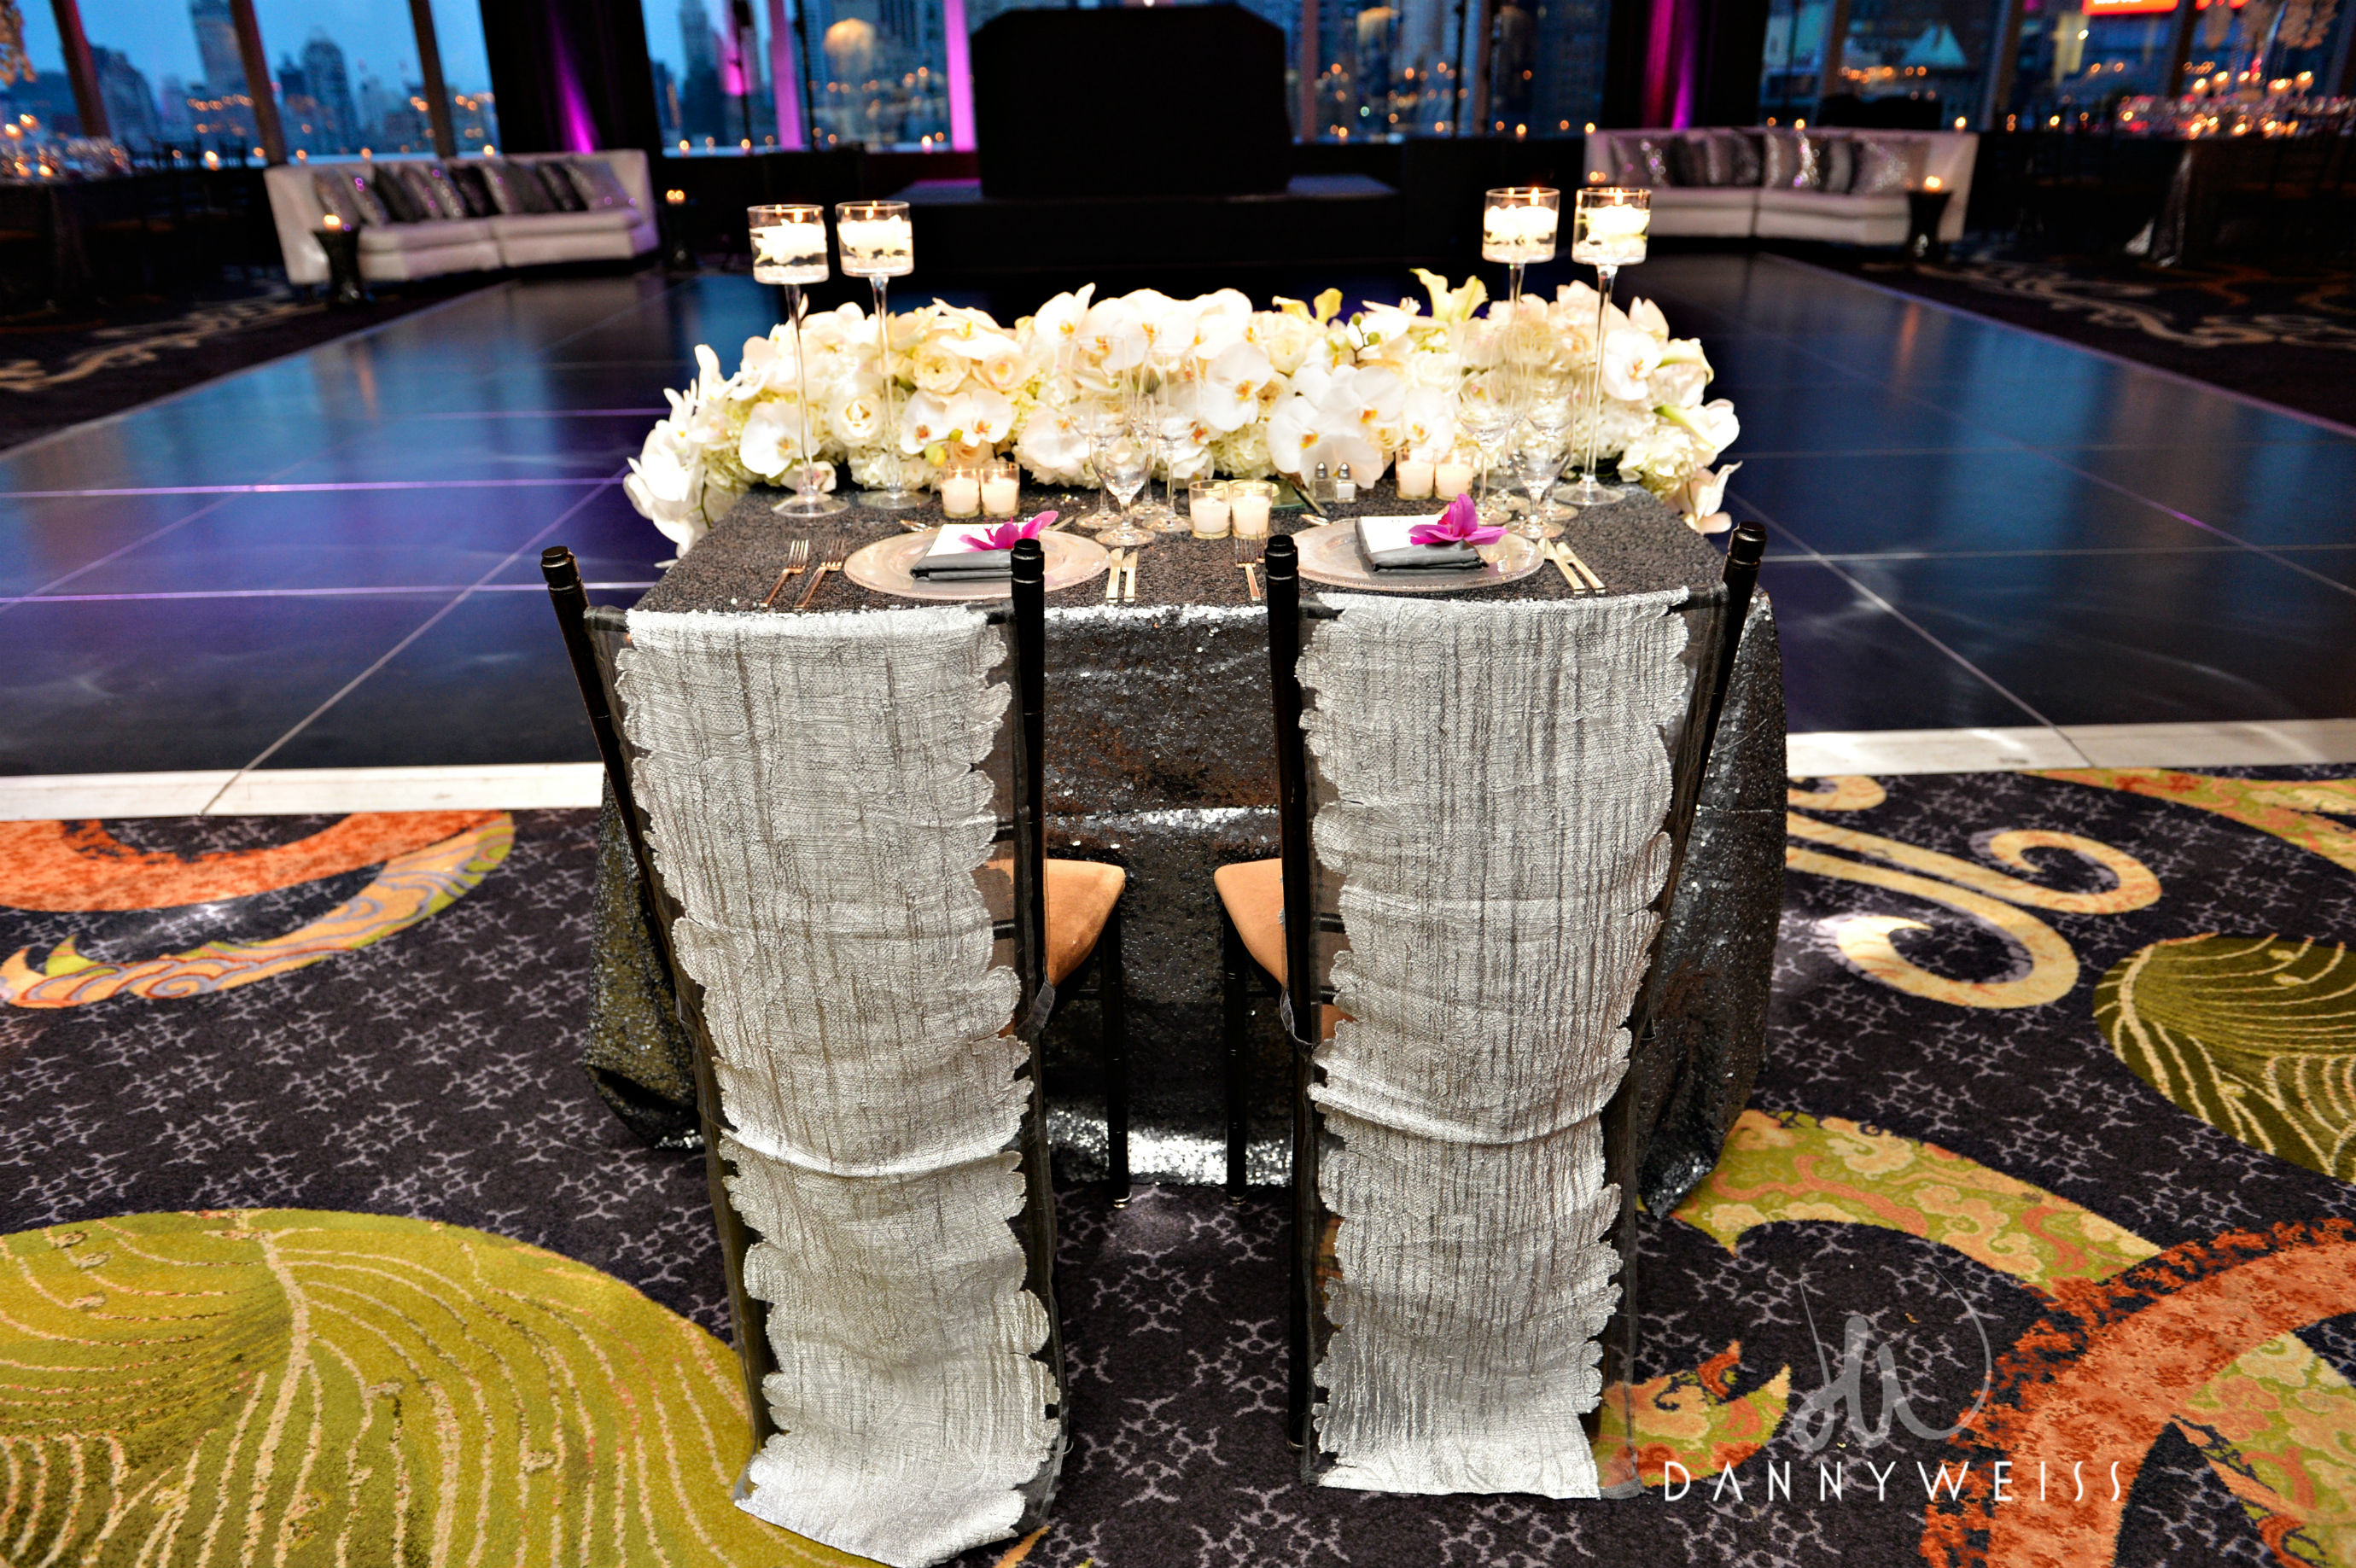 The sweetheart table design